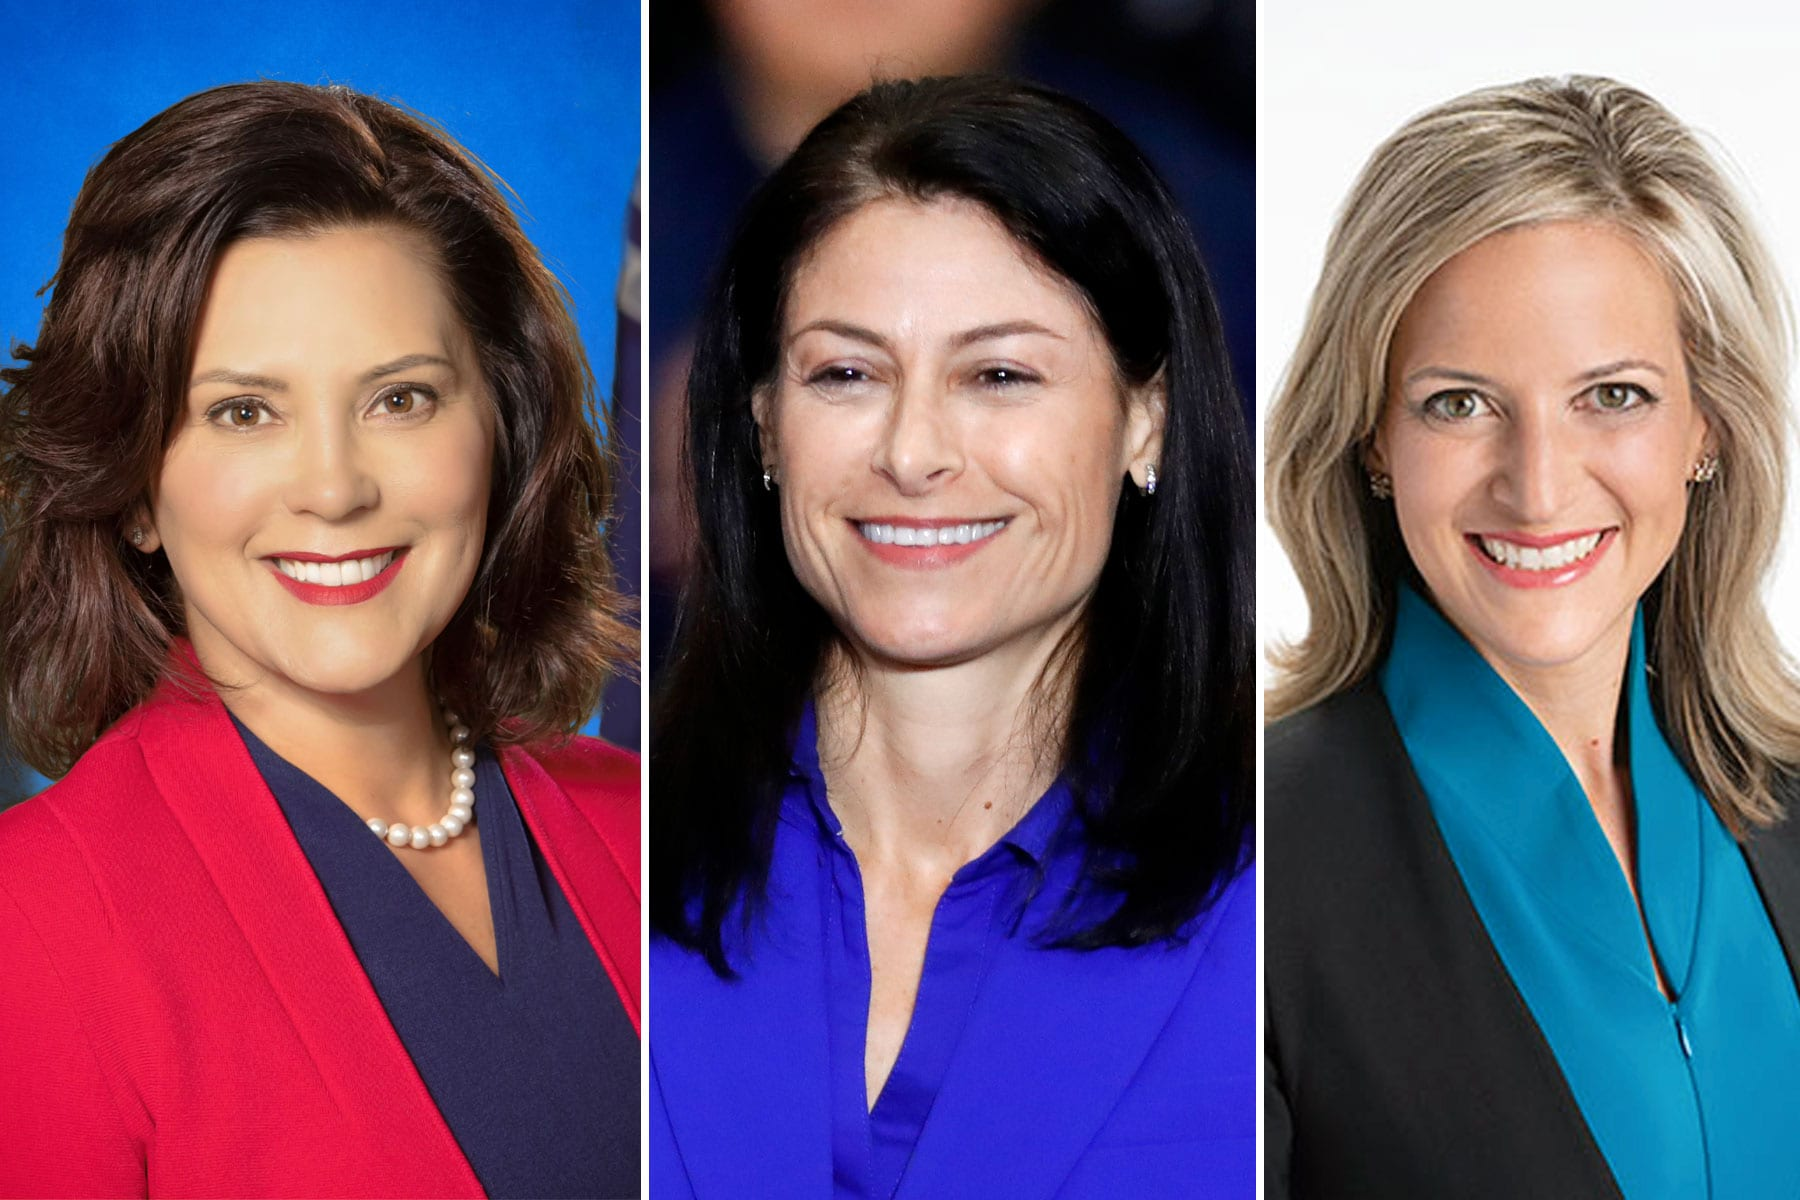 In Michigan, women hold power. Not everyone seems comfortable with that.